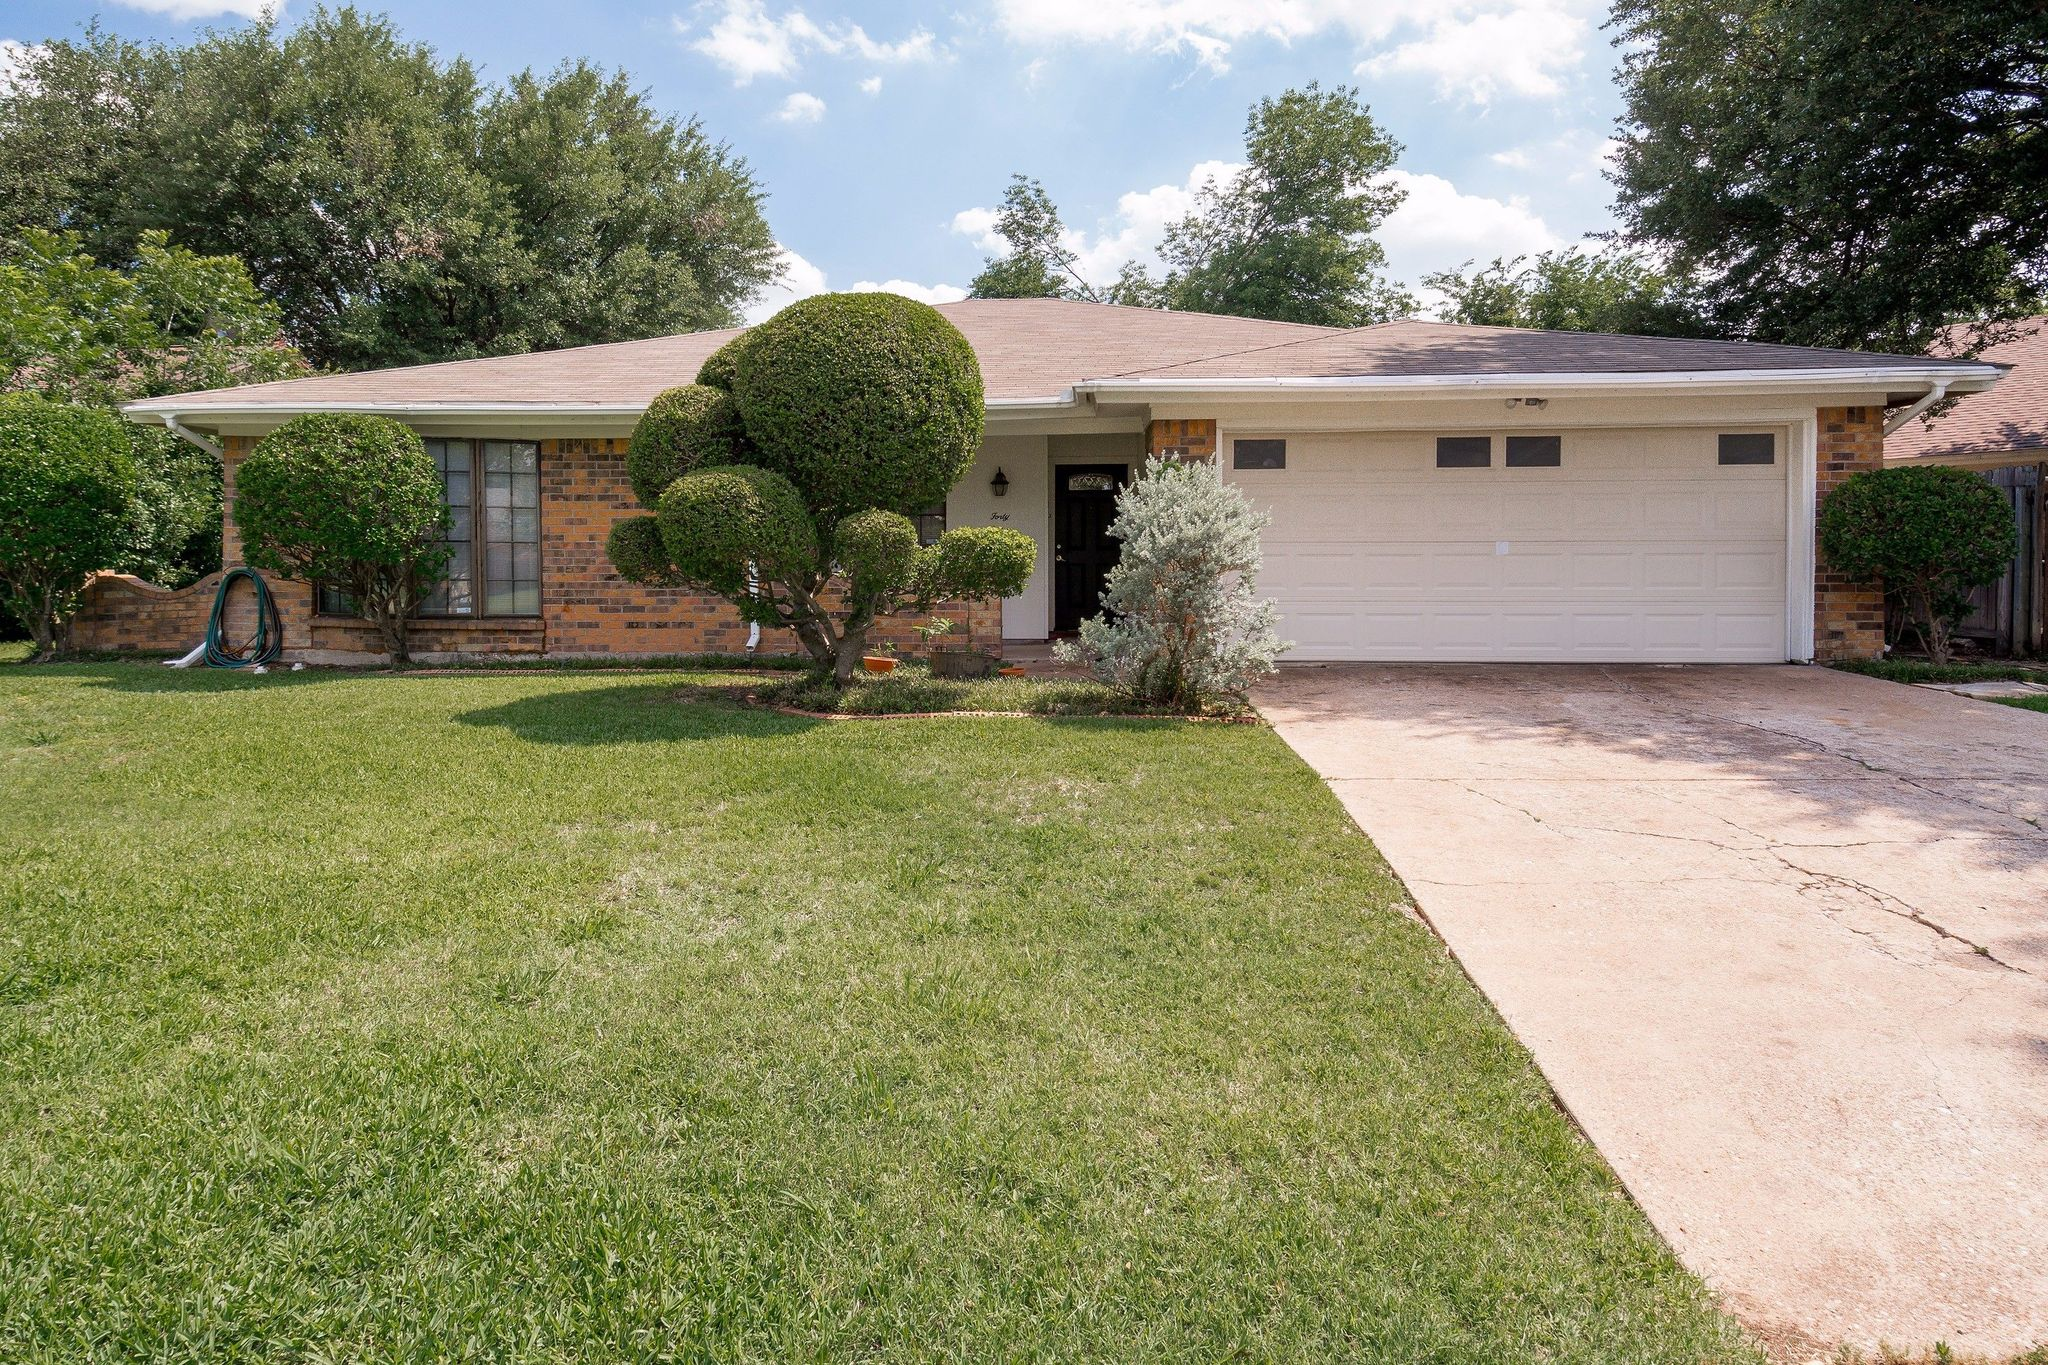 4016 hemlock st fort worth tx 76137 estimate and home details